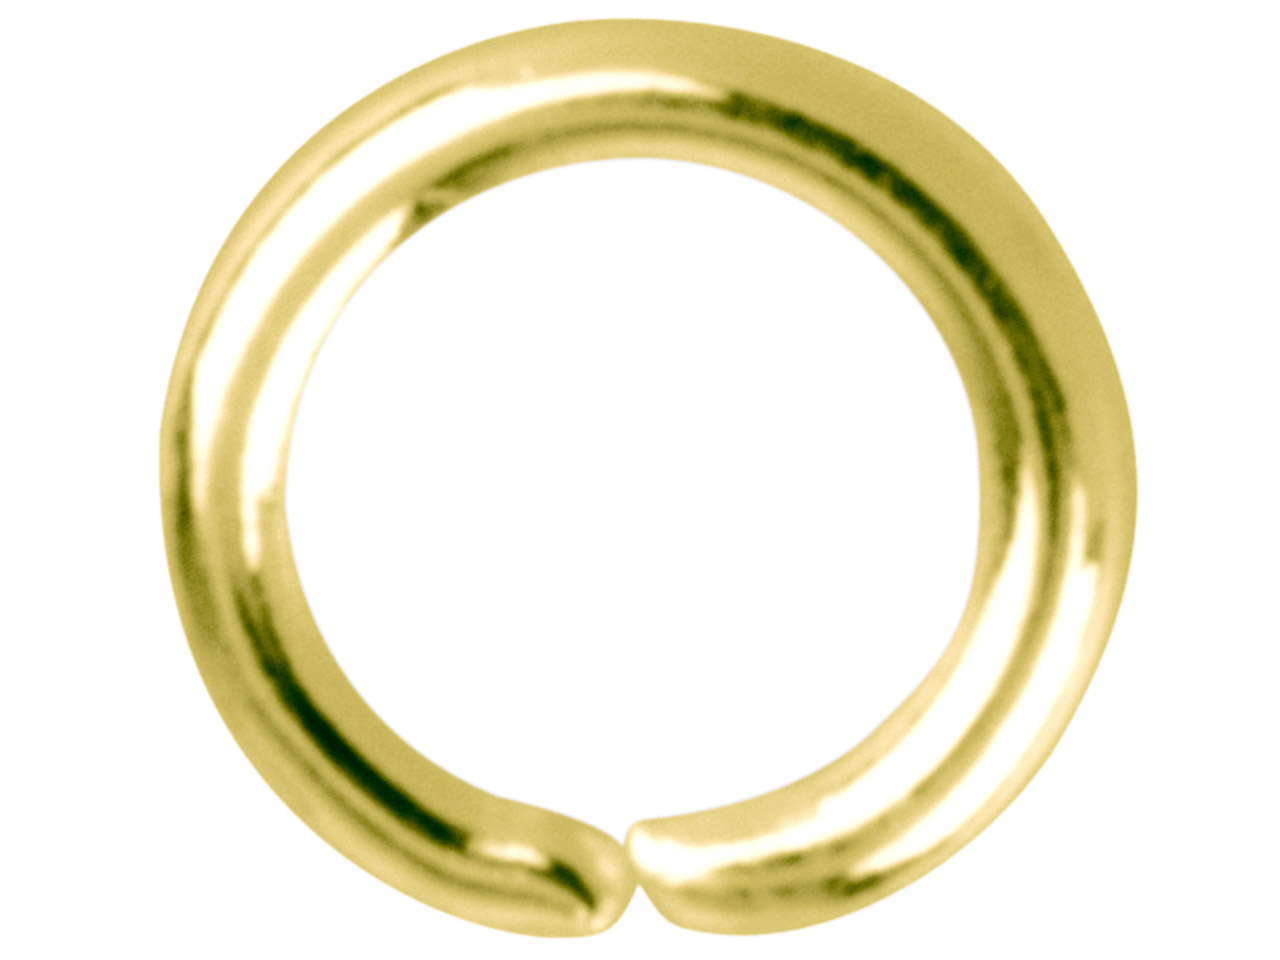 Gold Plated Jump Ring Round 4.5mm  Pack of 100,